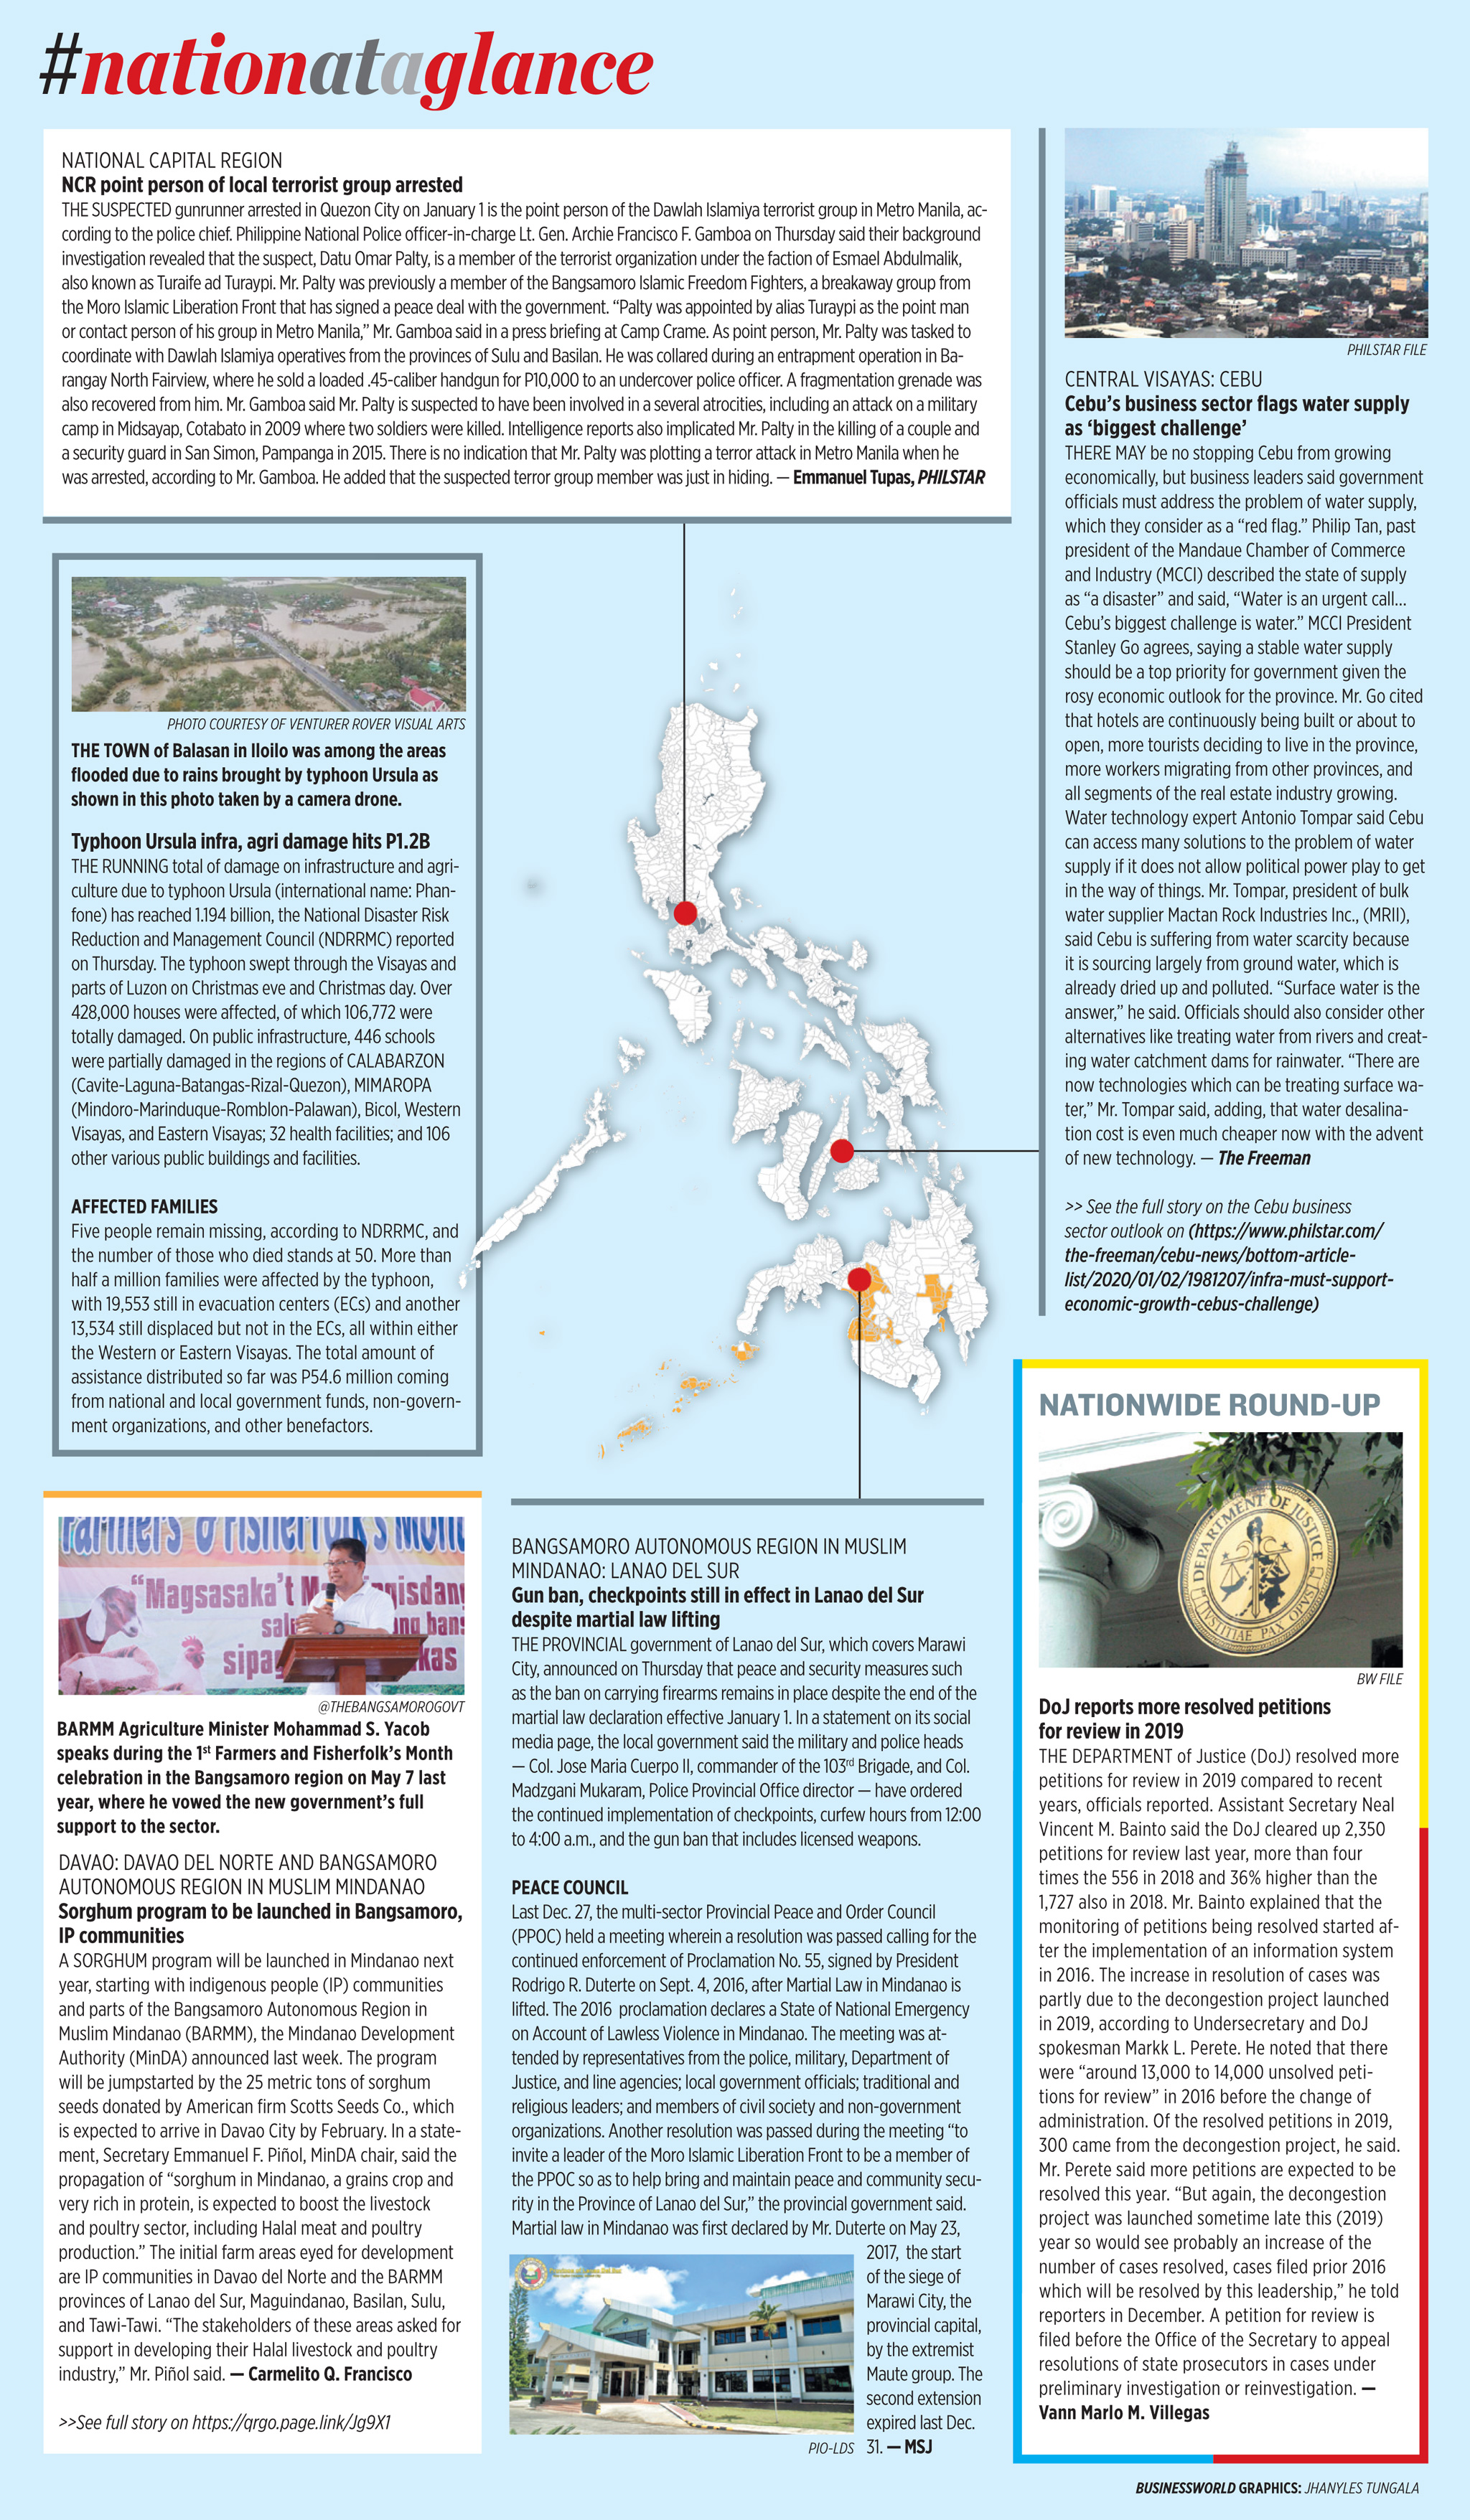 Nation at a Glance — (01/03/20)